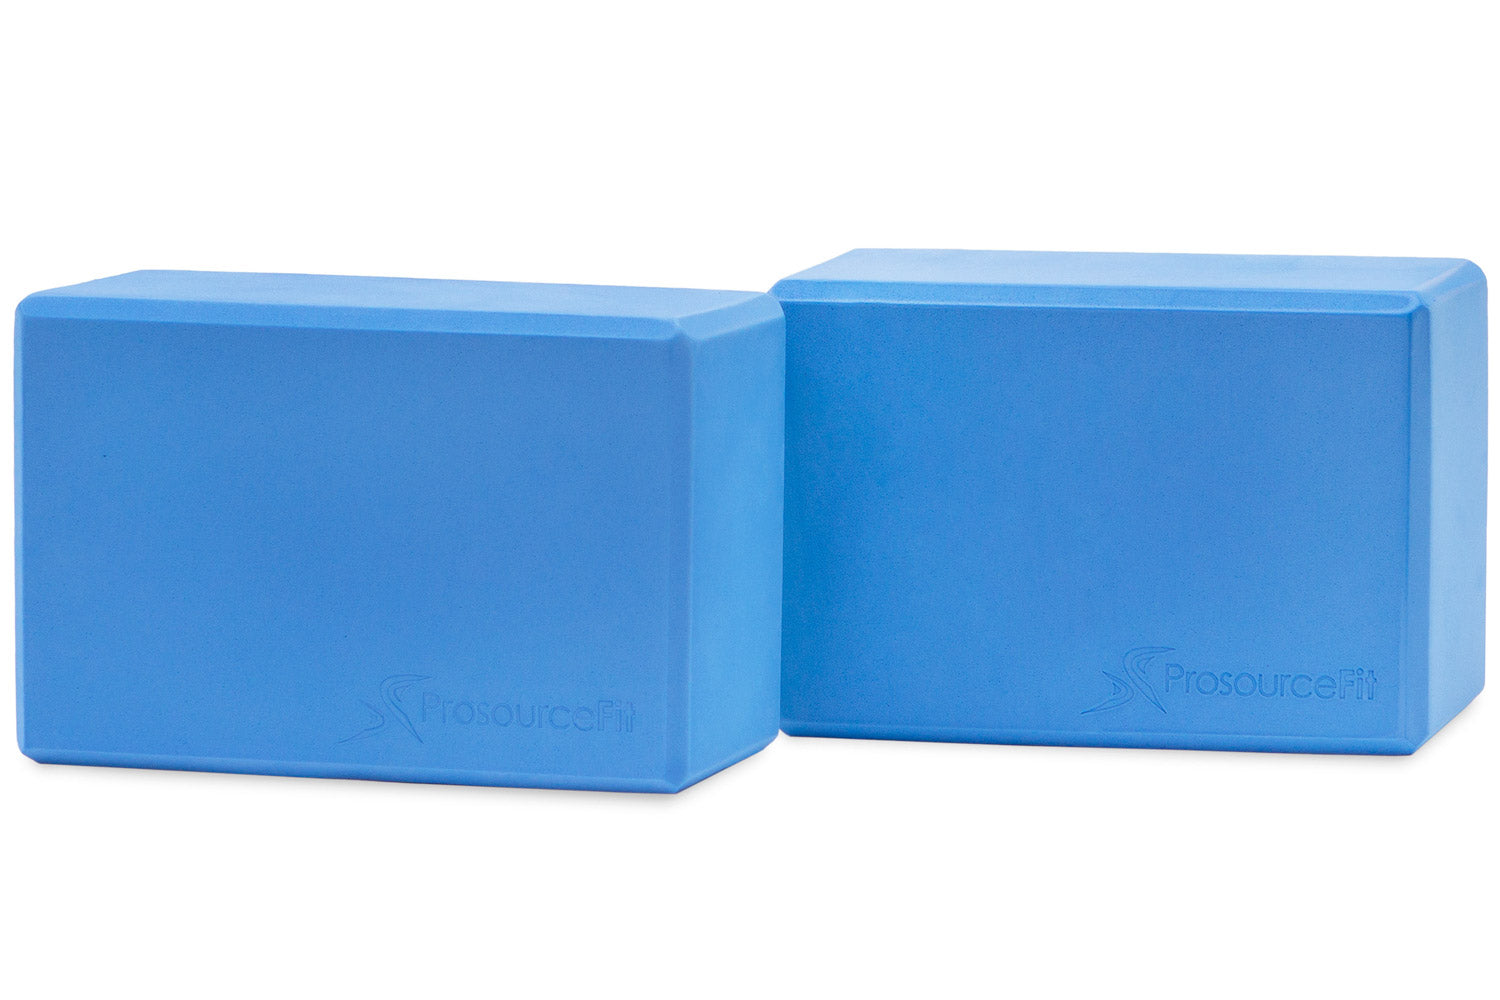 Aqua Set of 2 Foam Yoga Blocks